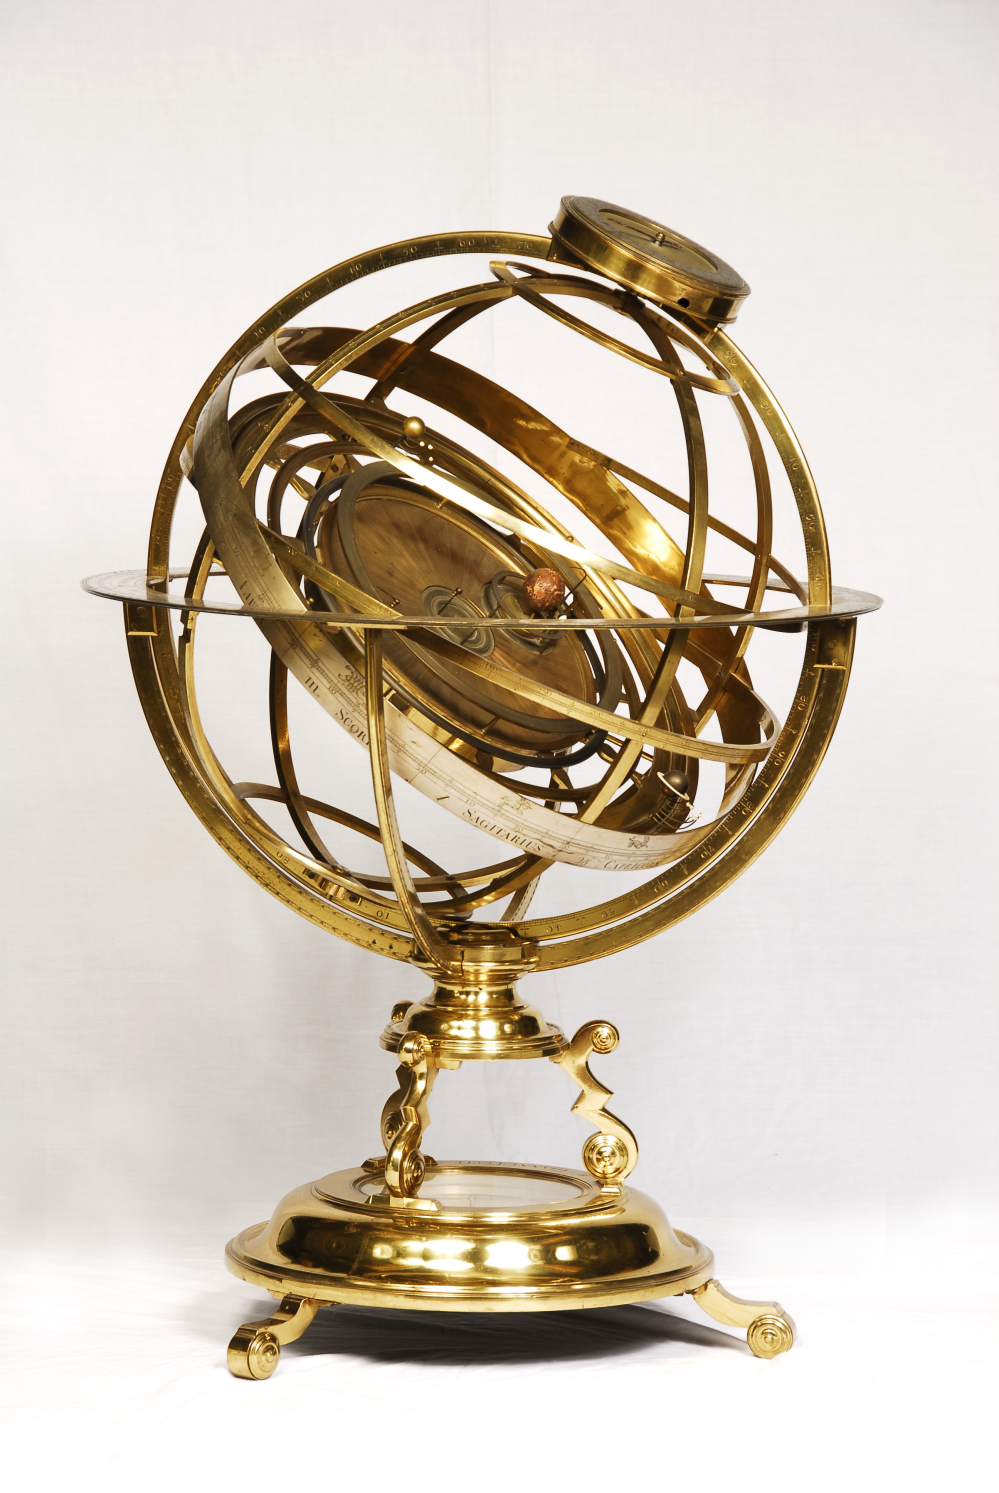 preview image for Armillary Orrery, by Richard Glynne, London, c. 1710-30